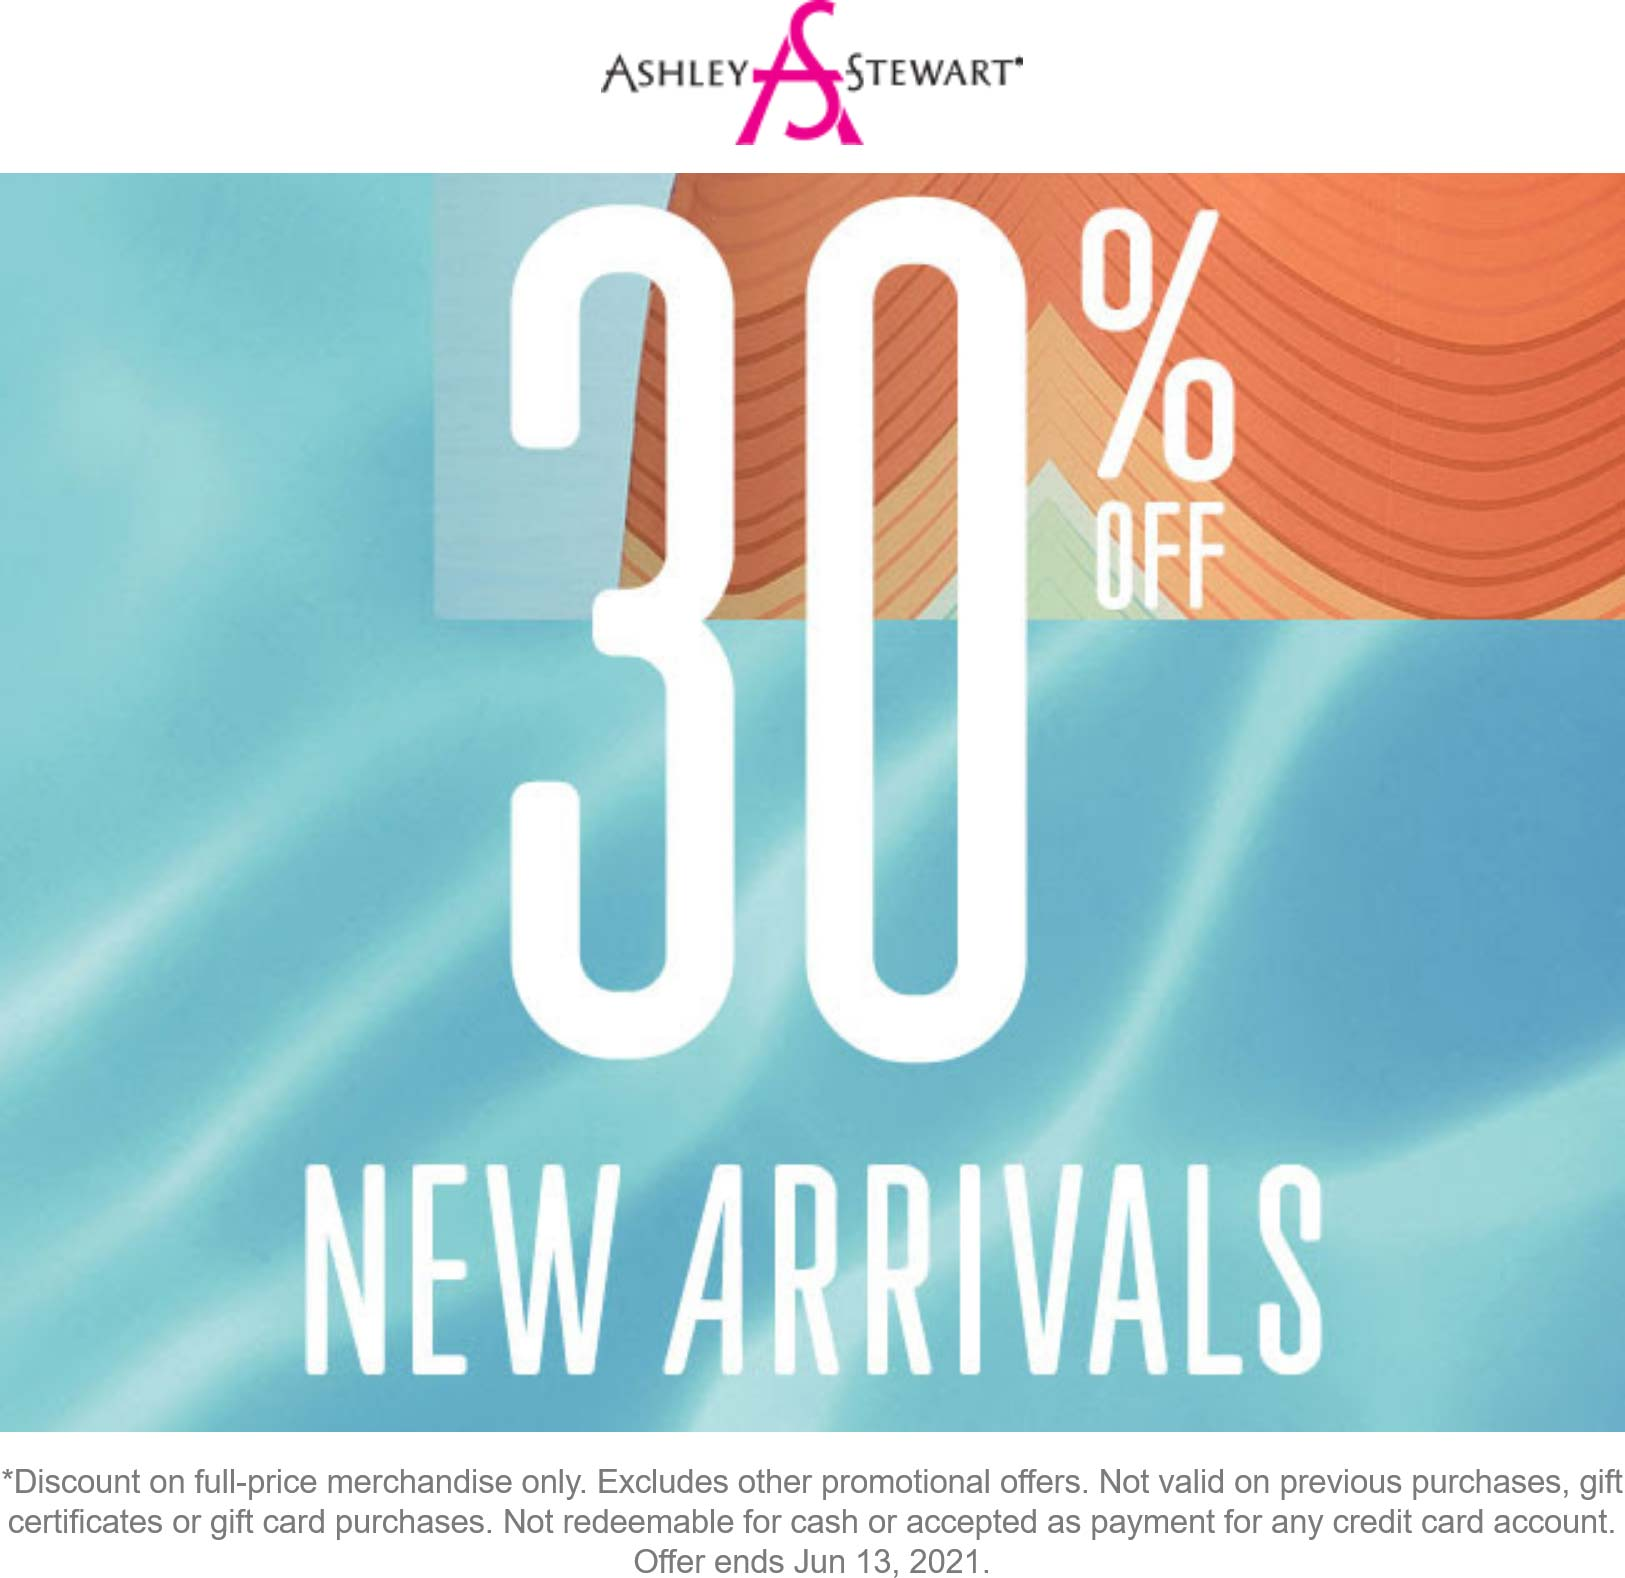 Ashley Stewart stores Coupon  30% off new arrivals today at Ashley Stewart #ashleystewart